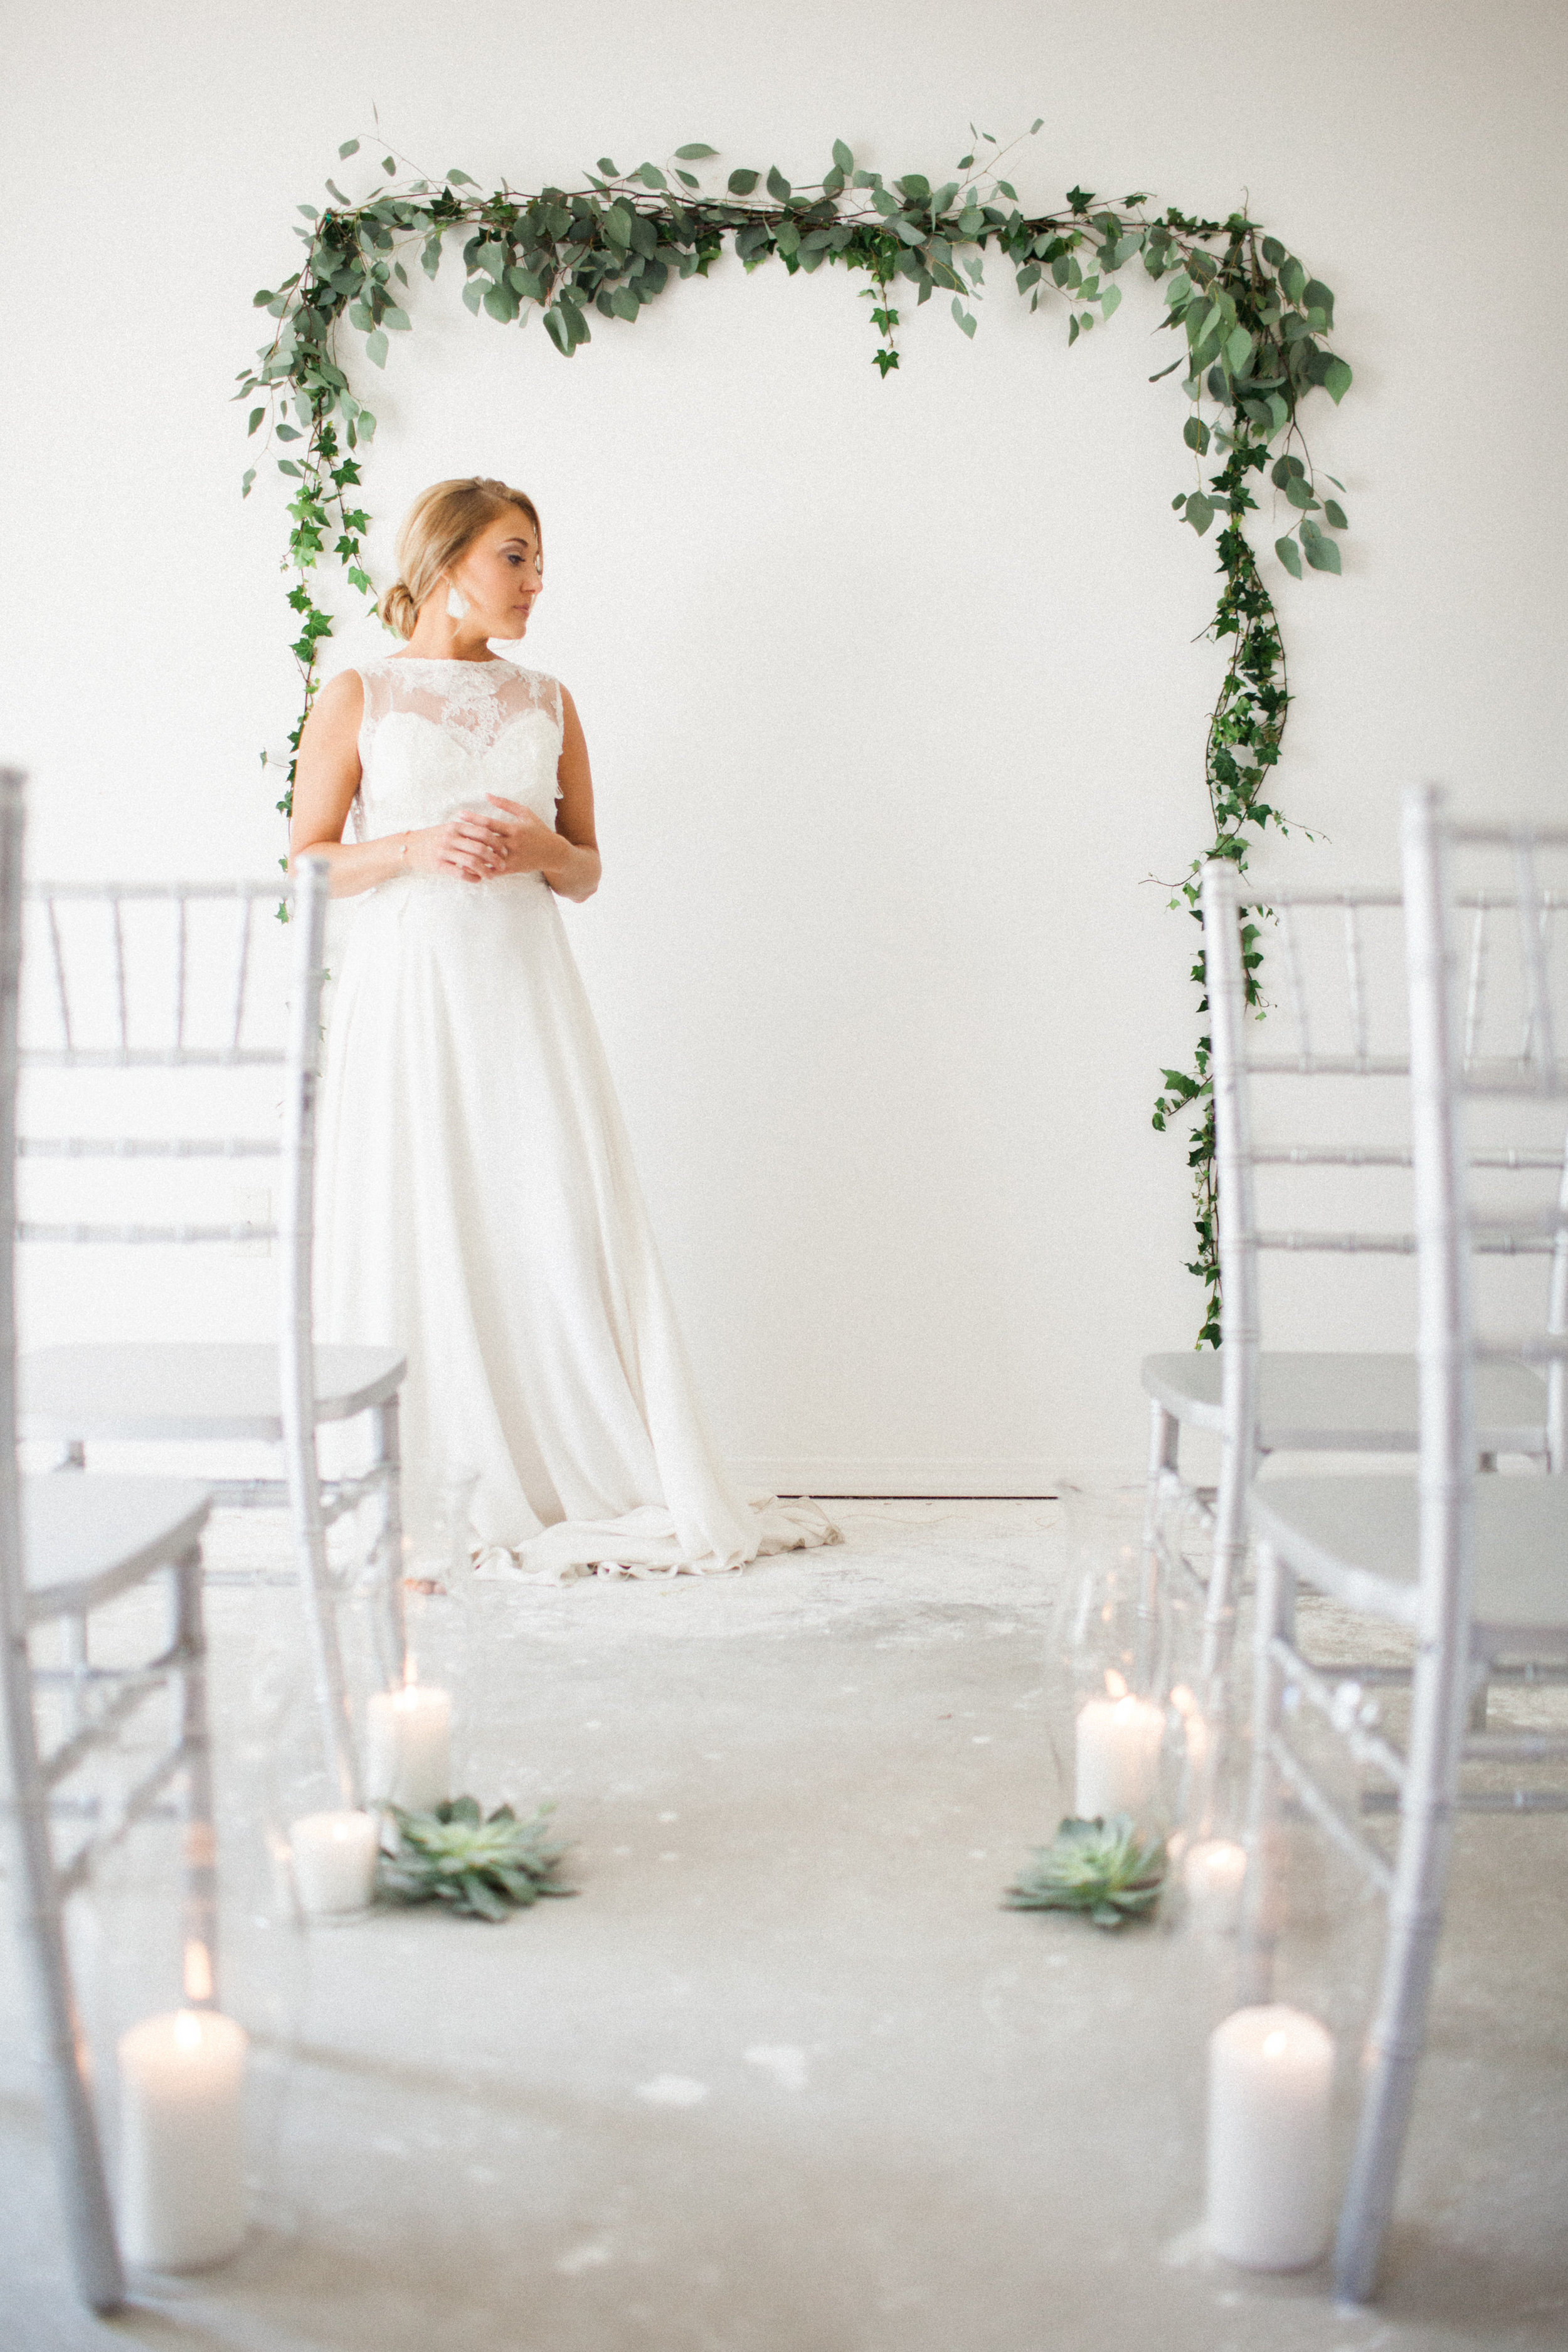 ivey-weddings-cassie-olimb-photography-broome-sarah-seven-wedding-dress-ivory-and-beau-bridal-boutique-savannah-wedding-dresses-savannah-bridal-gowns-savannah-weddings-jacksonville-weddings-jacksonville-bridal-florida-bridal-boutique-14.jpg